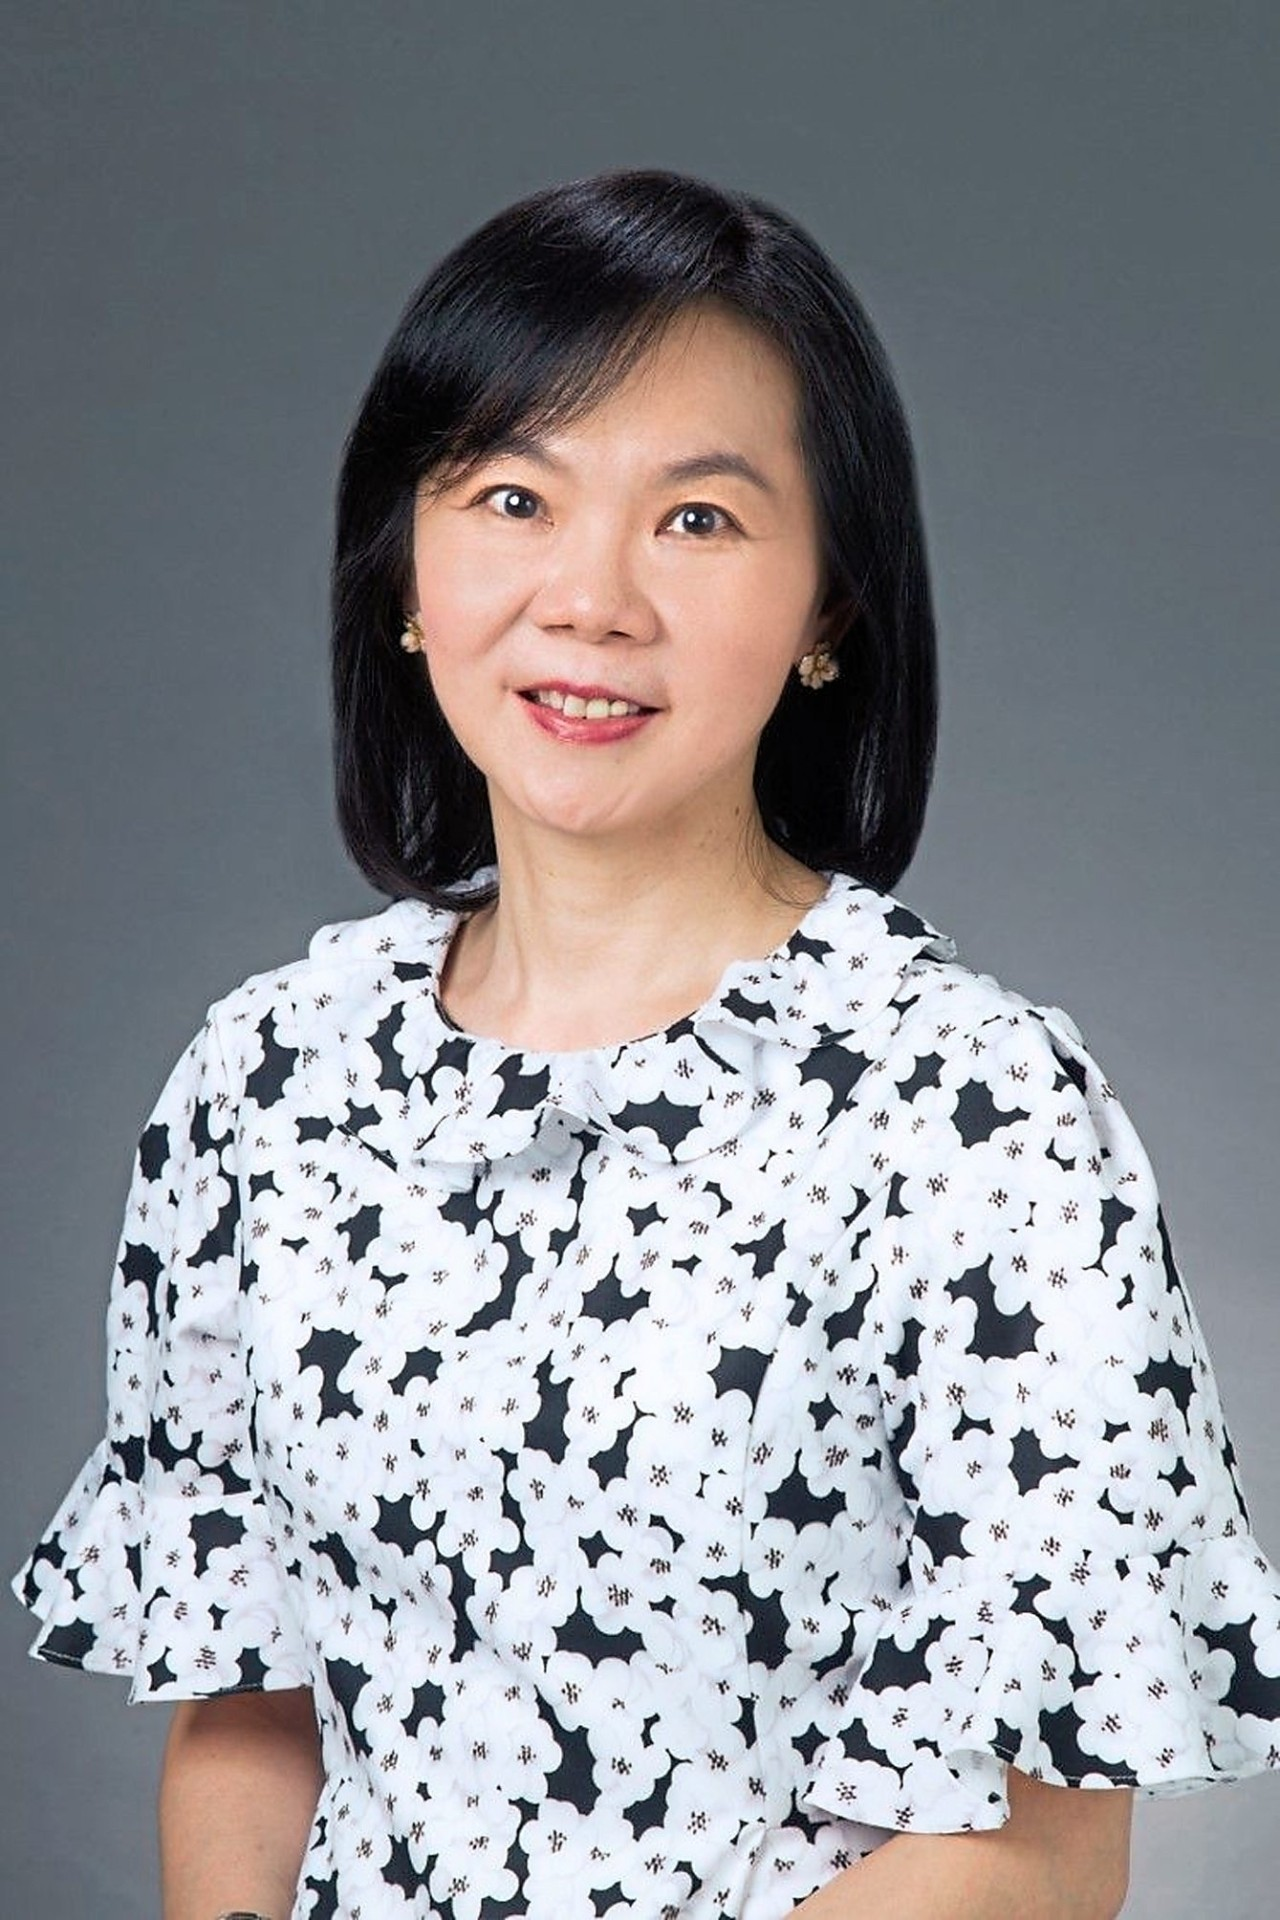 Belle Chan is senior investment strategist at Standard Chartered Private Bank